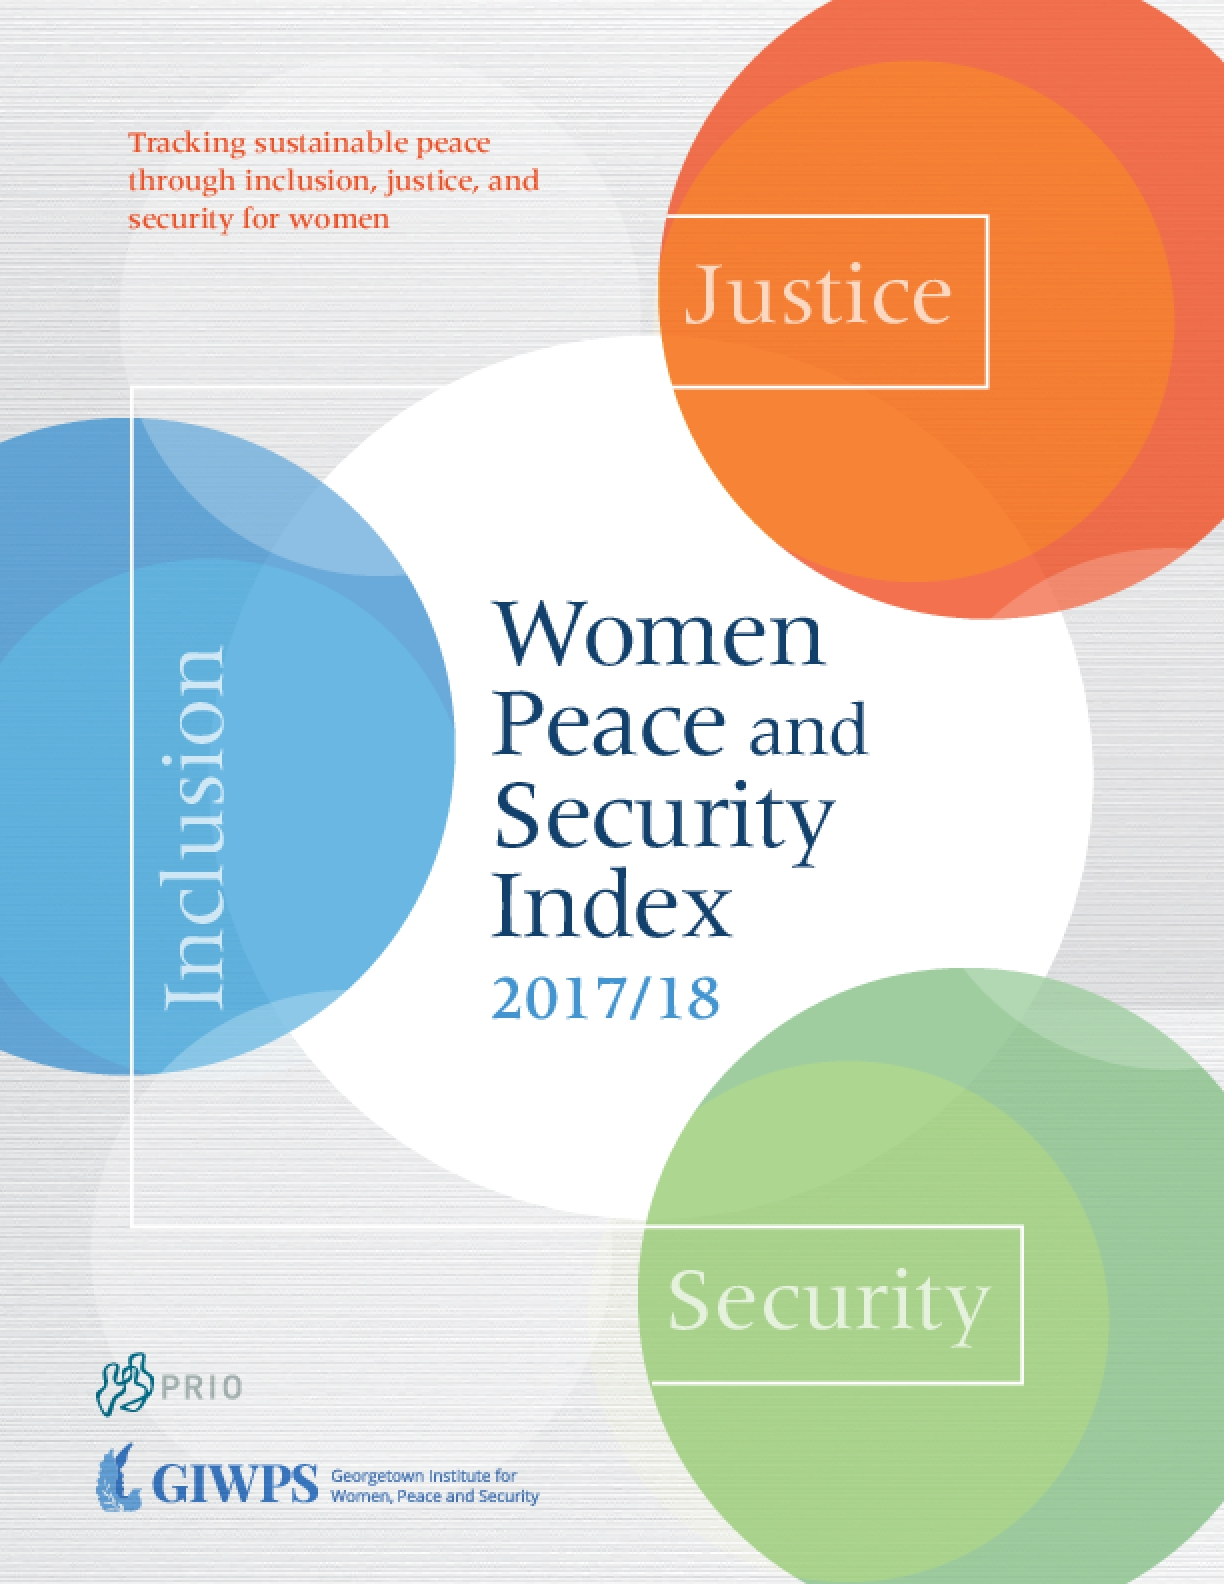 Women Peace and Security Index 2017/18